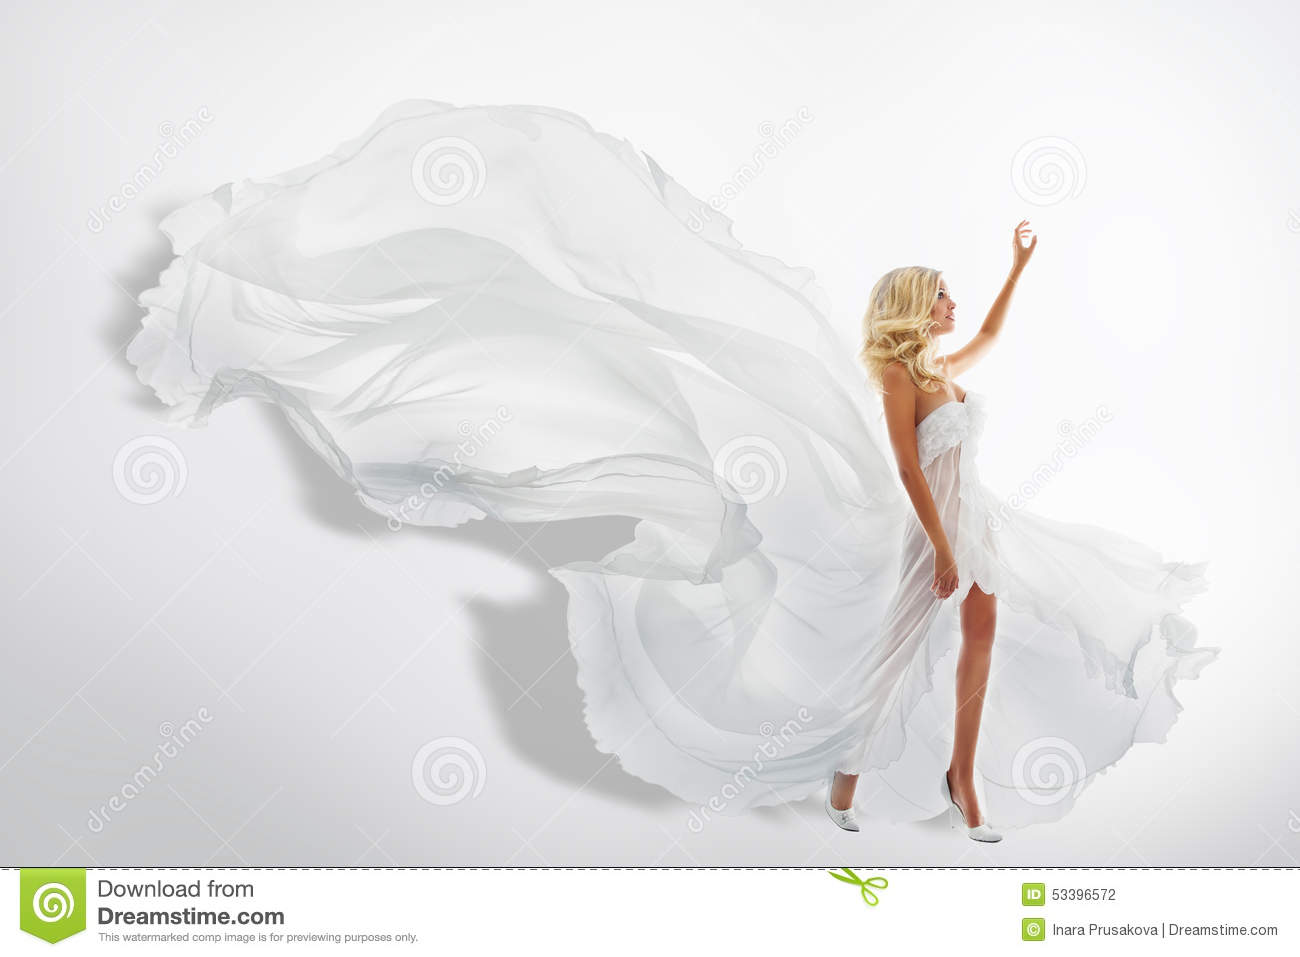 Woman White Waving Dress, Showing Hand Up, Flying Silk Fabric